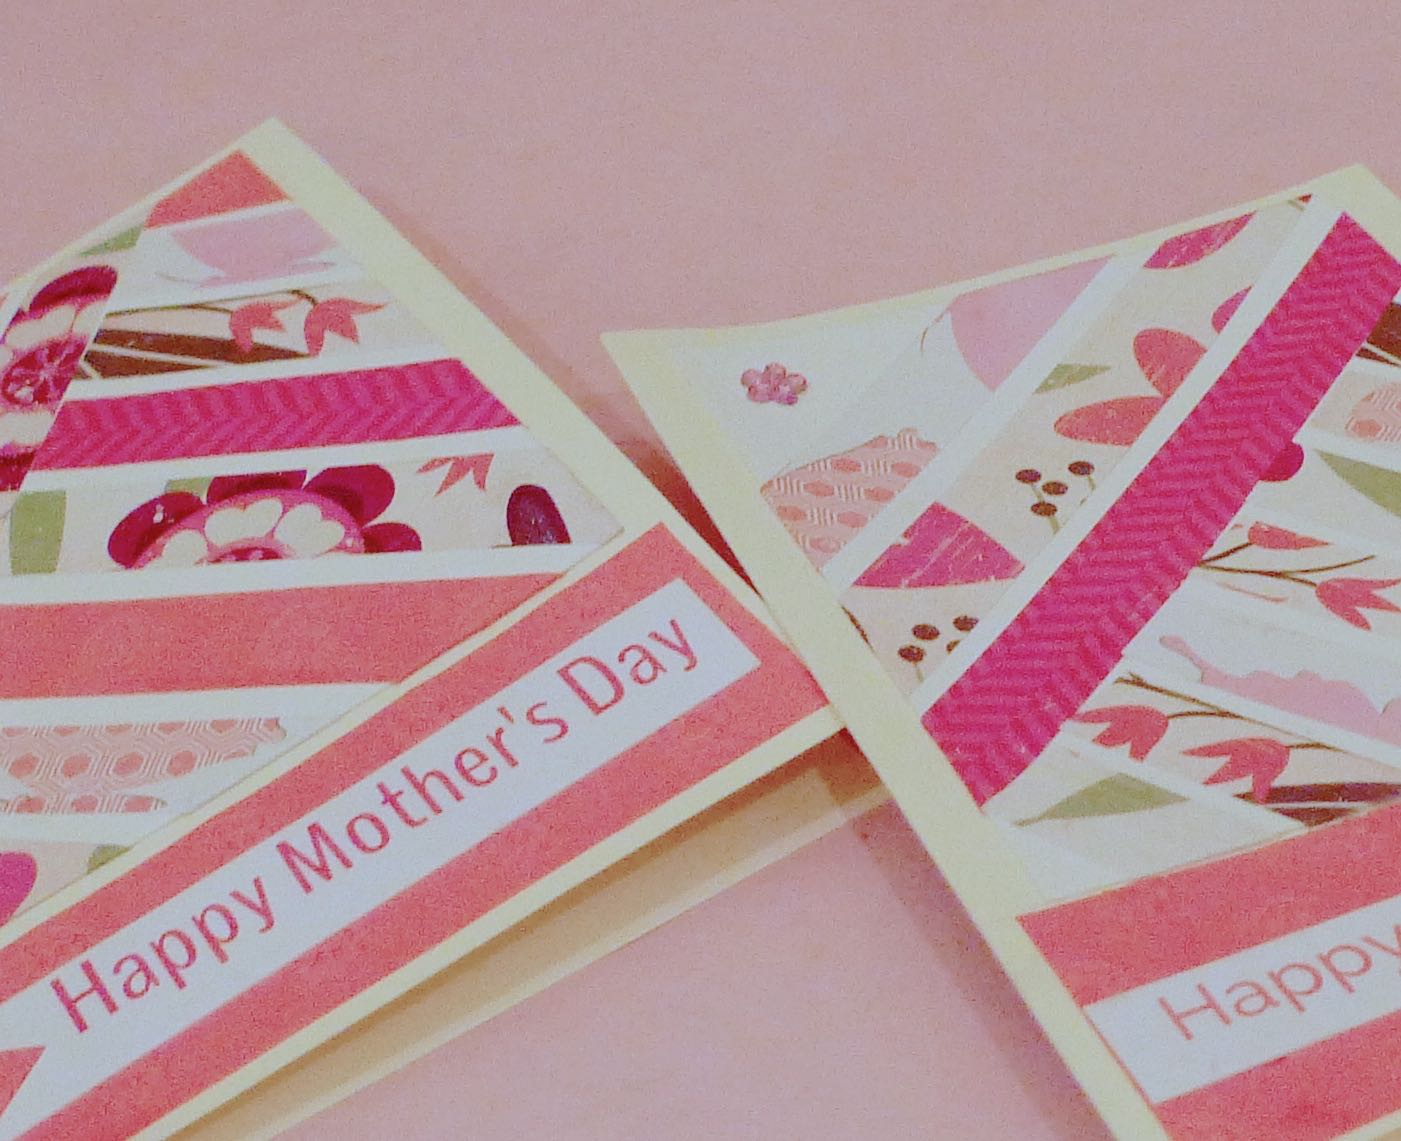 Mothers Day card close-up